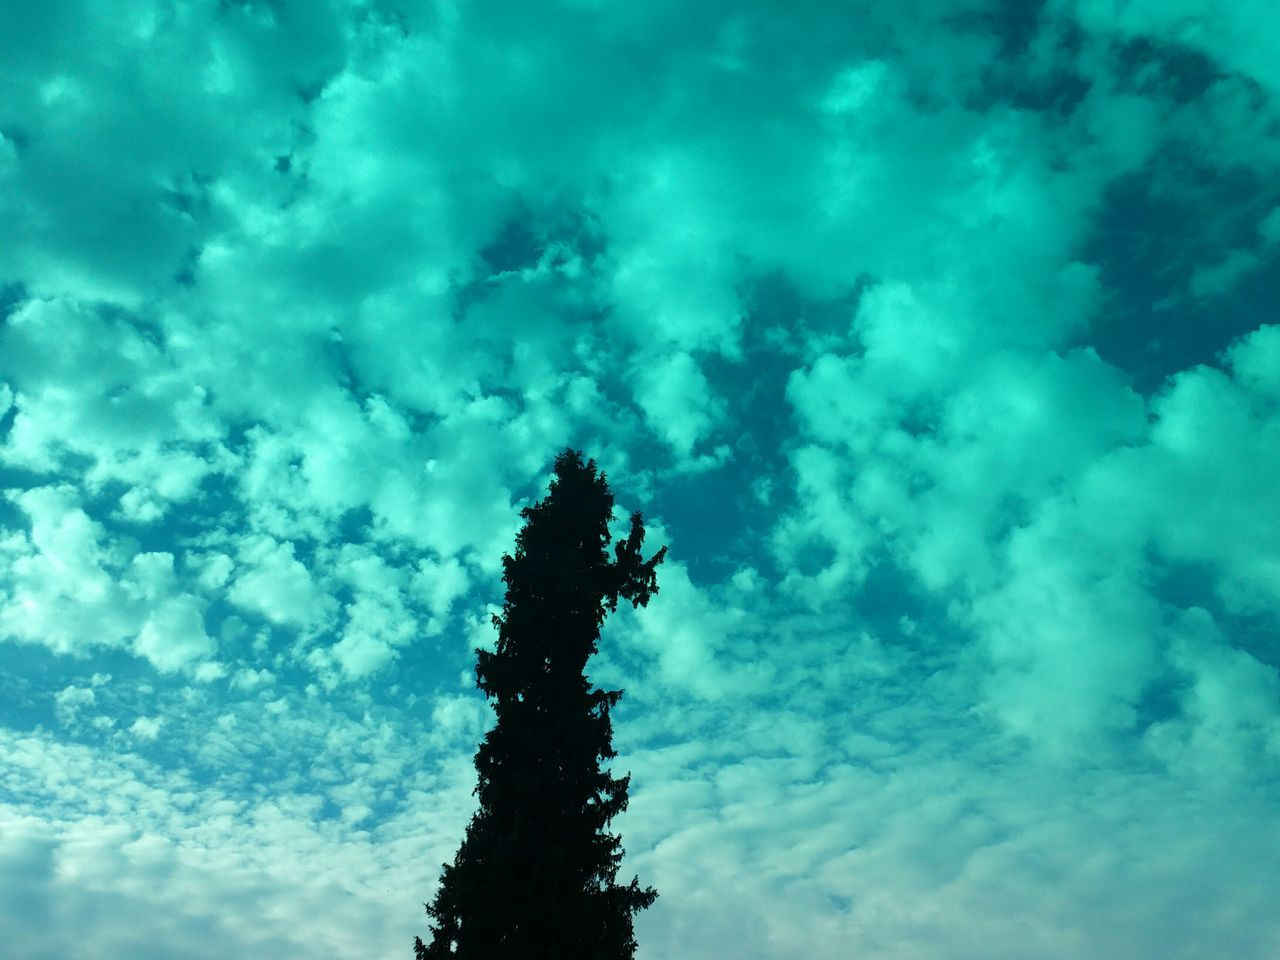 low angle view, sky, cloud - sky, silhouette, nature, no people, beauty in nature, day, outdoors, tree, growth